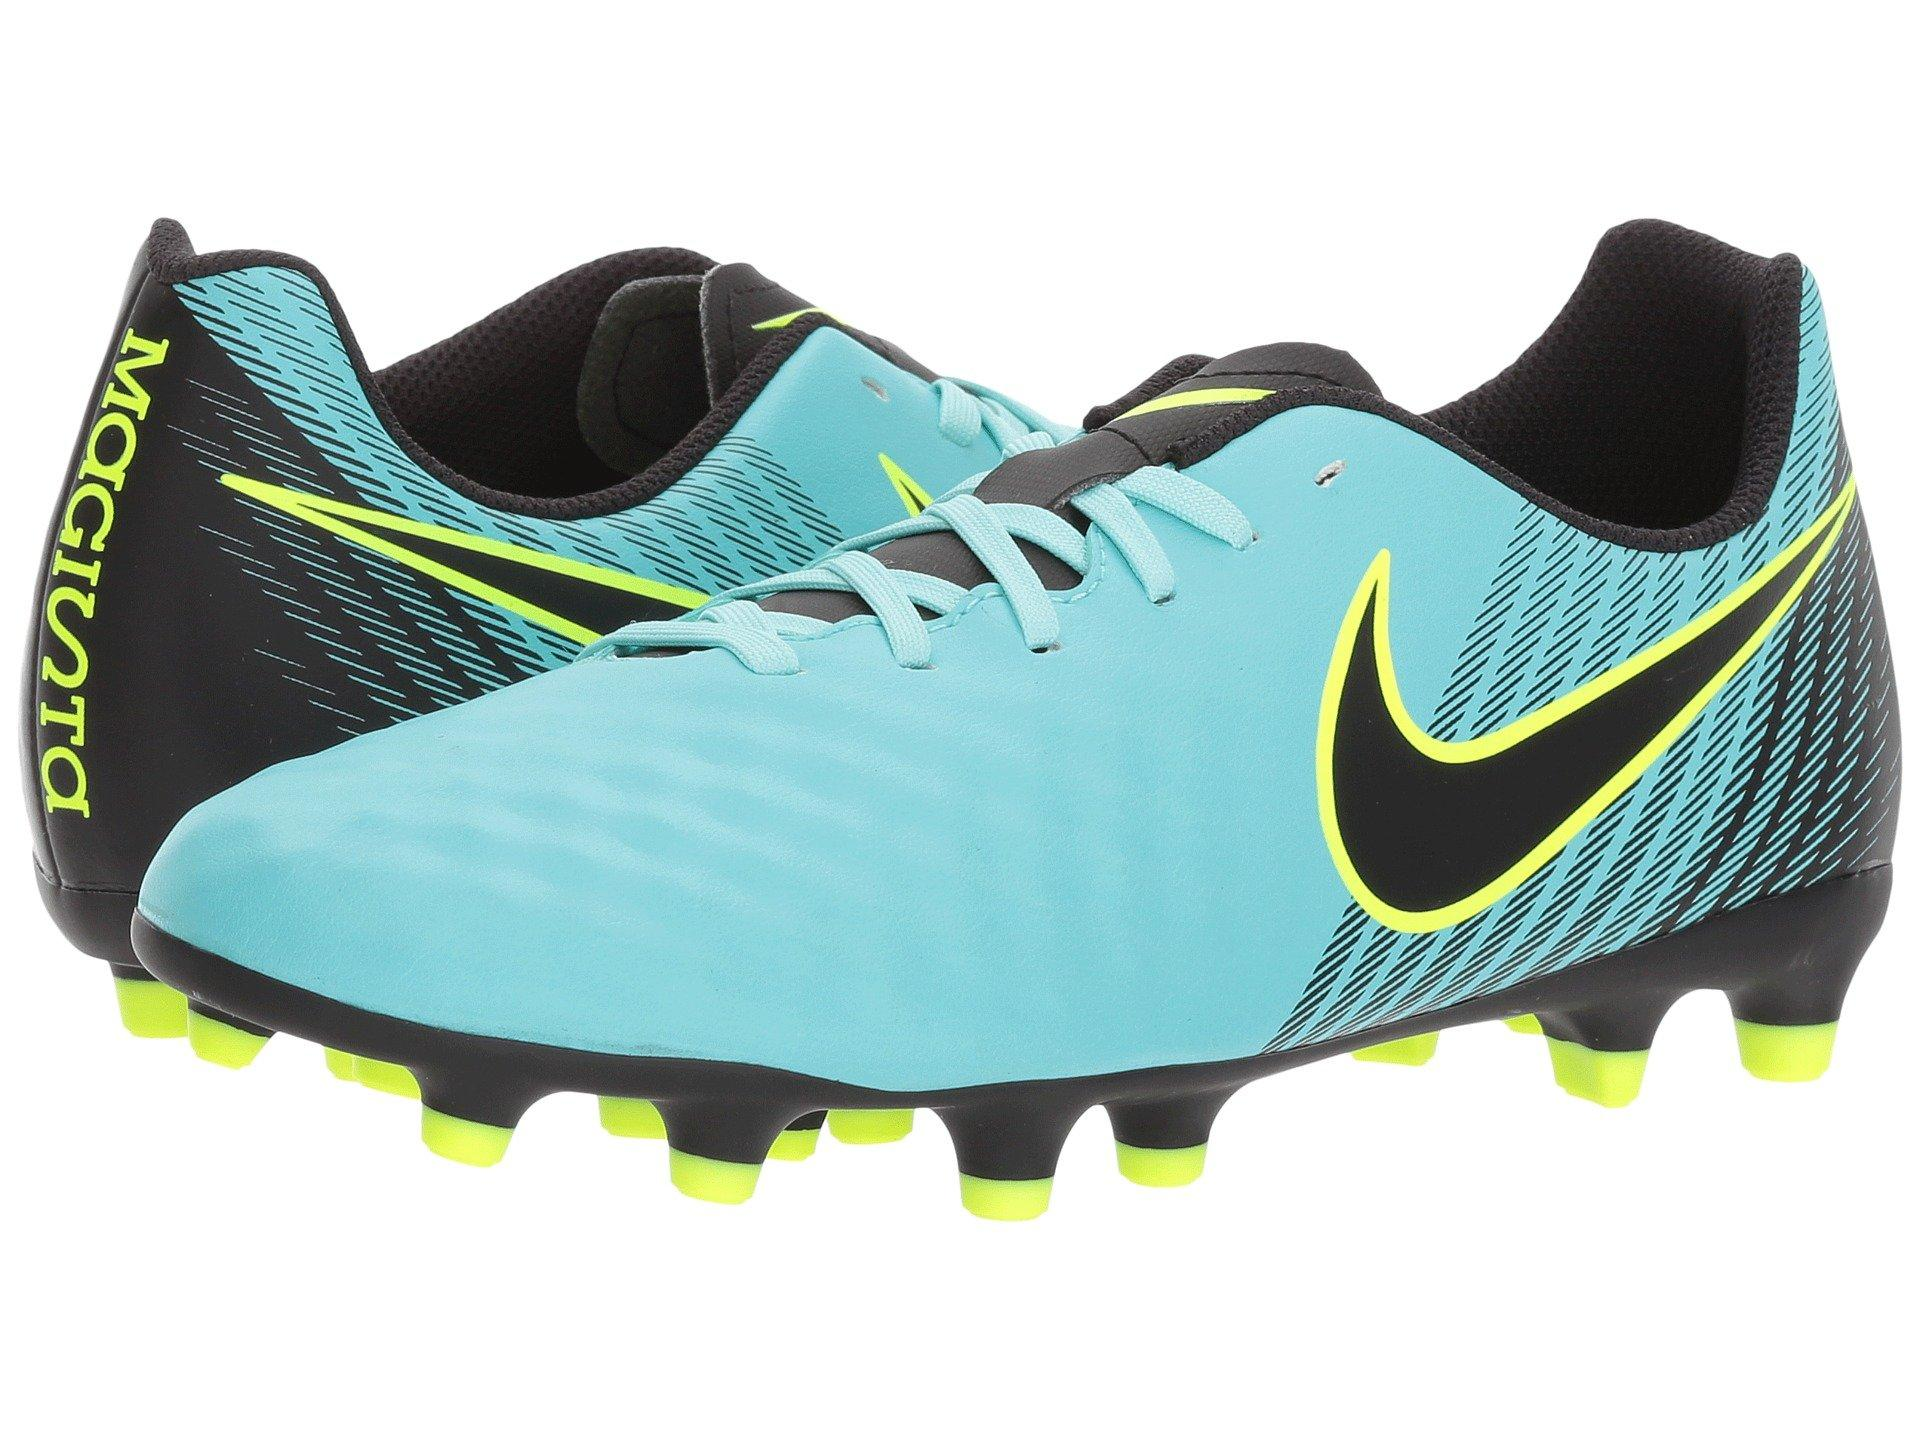 5e98deb9b4c1 Nike Magista Onda Ii Fg, Light Aqua/Black/Igloo | ModeSens